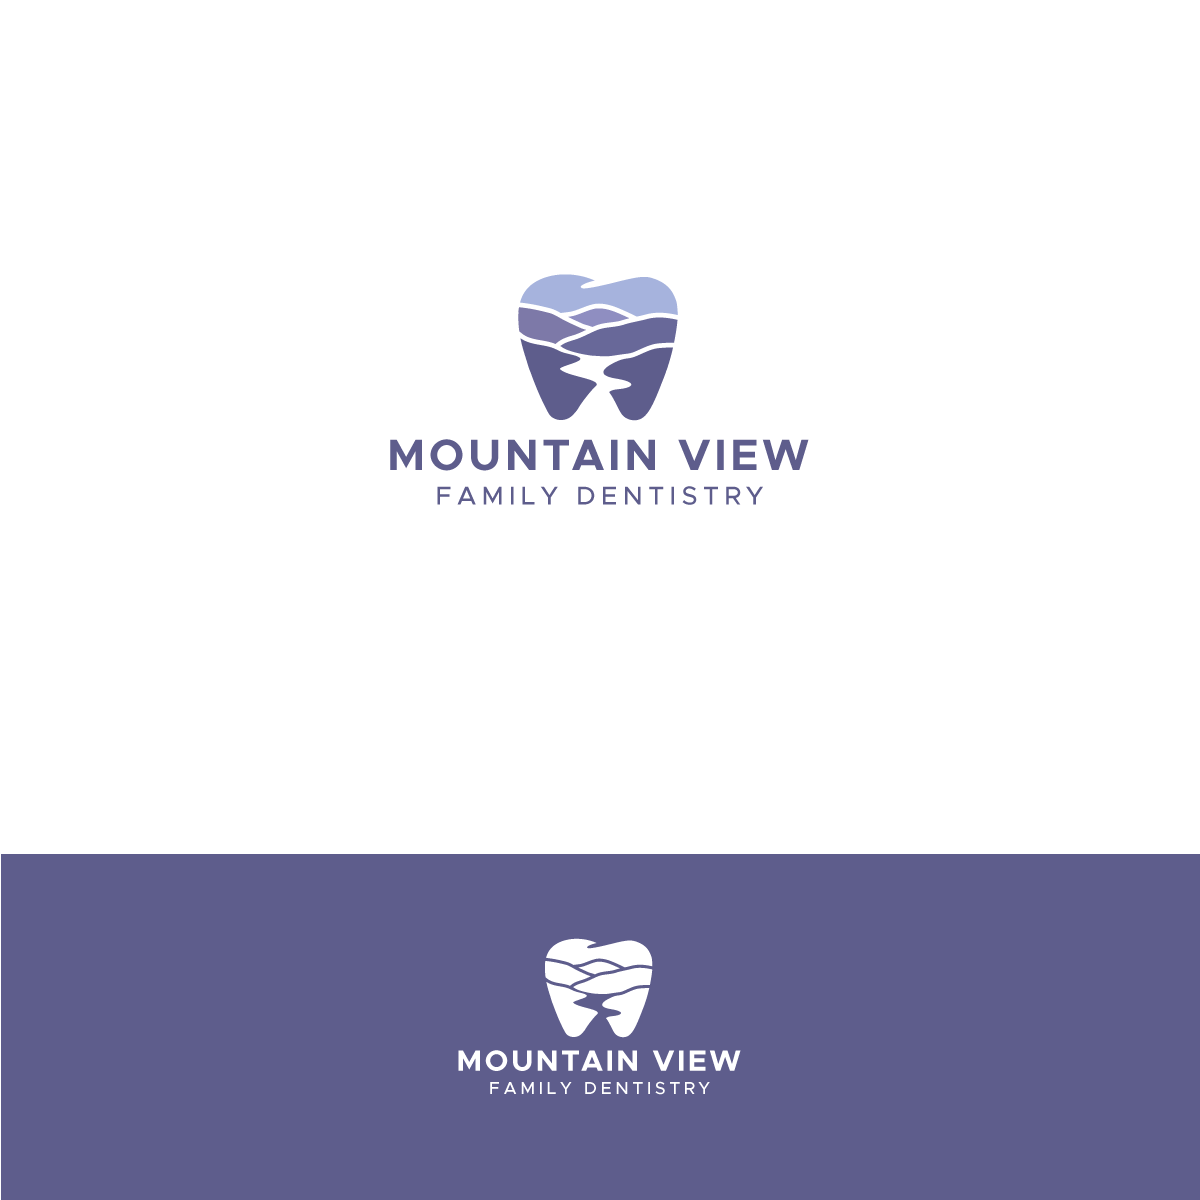 Design an awesome logo for a dental practice in the foothills of the Smokey Mountains